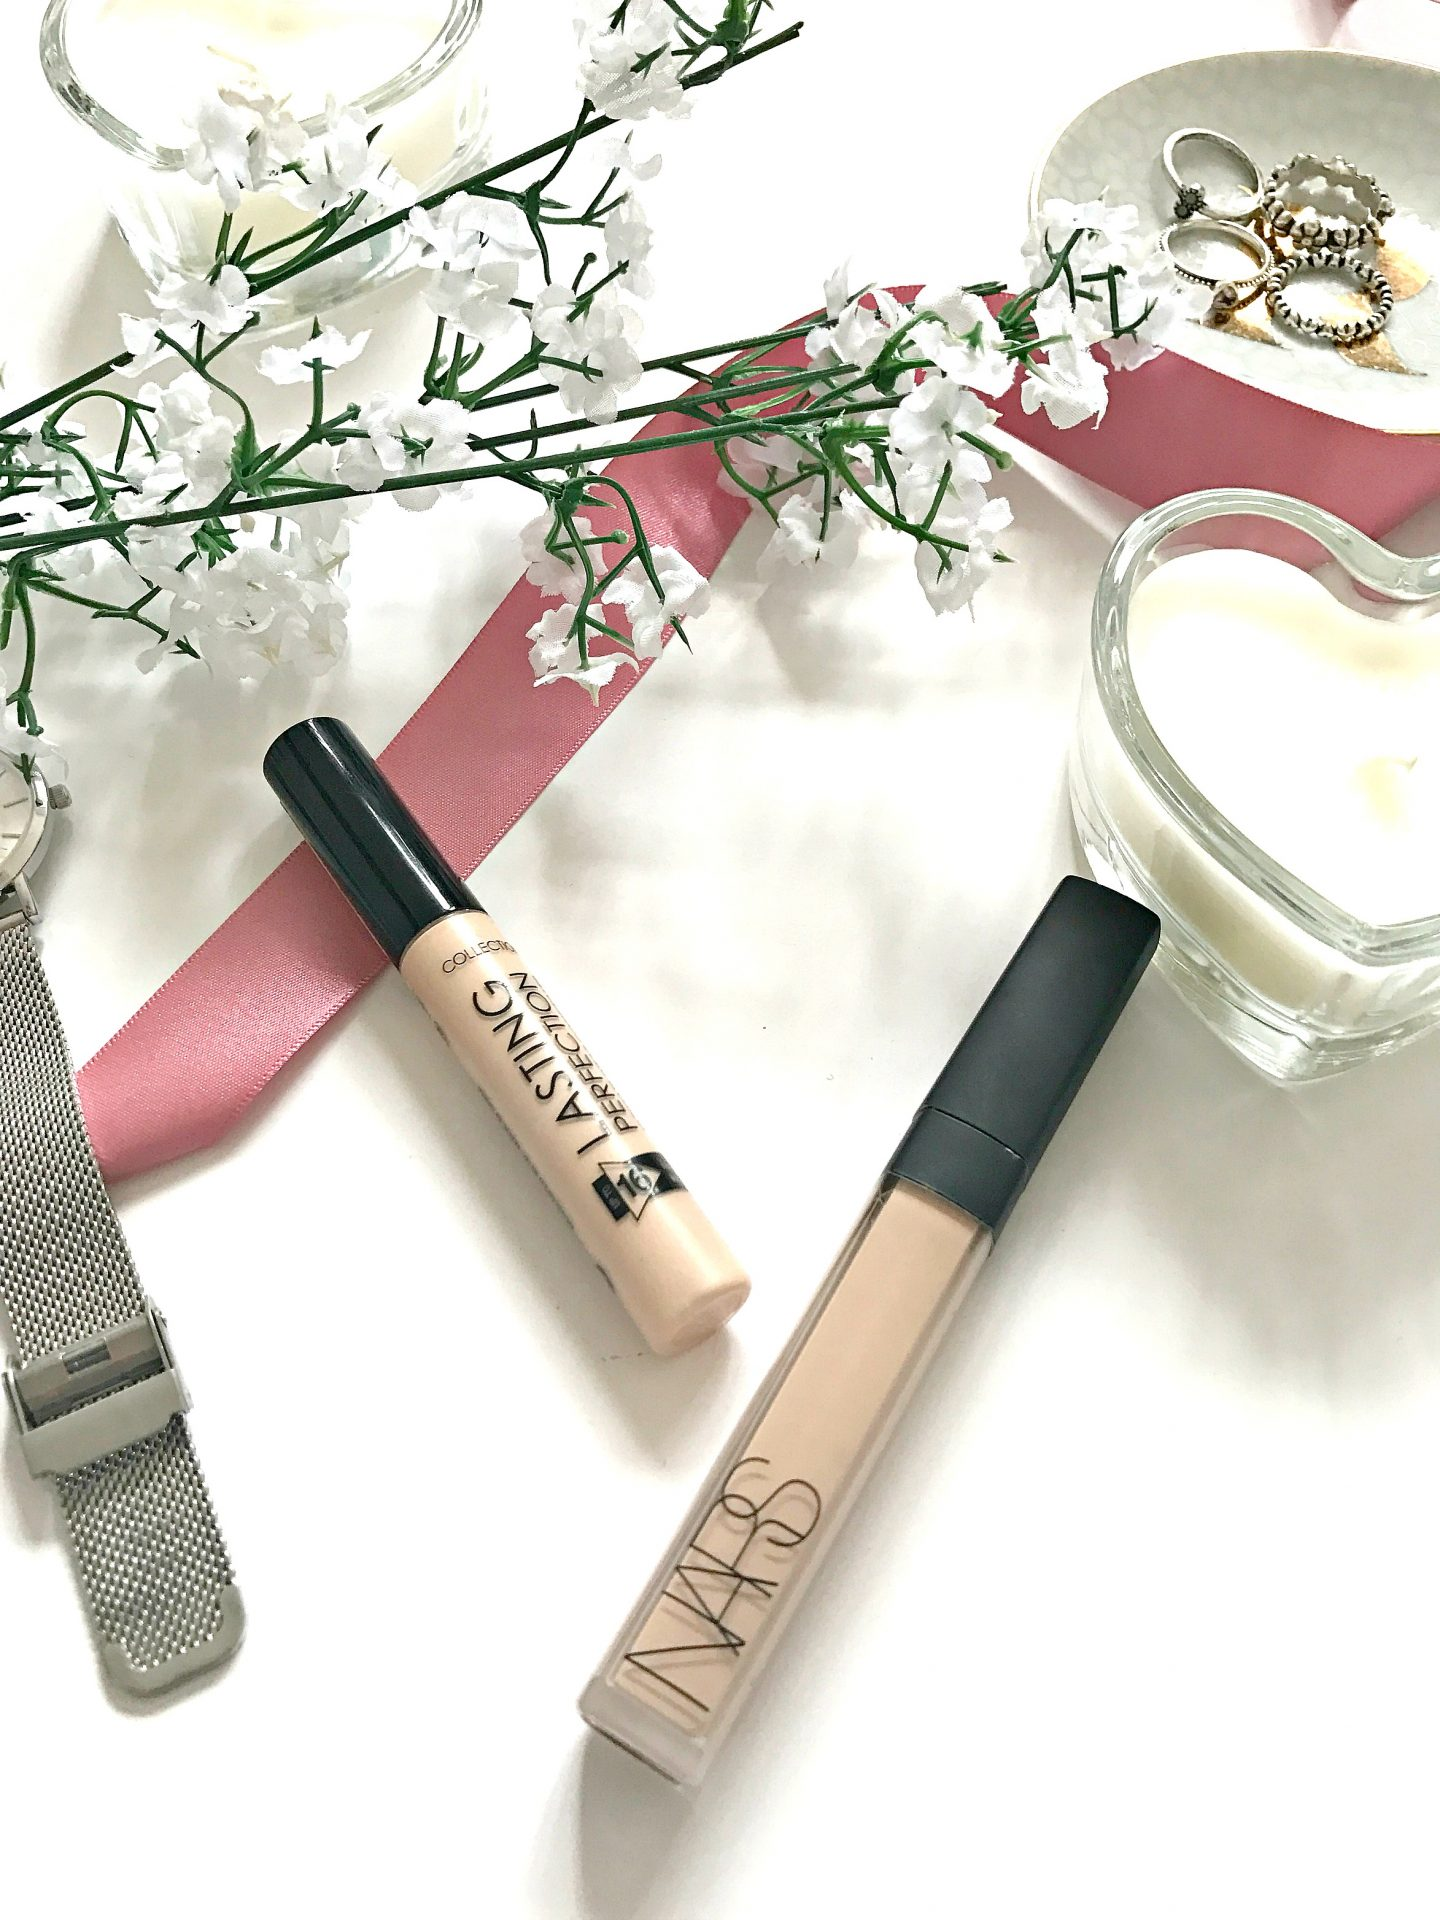 2 concealers you need to try!